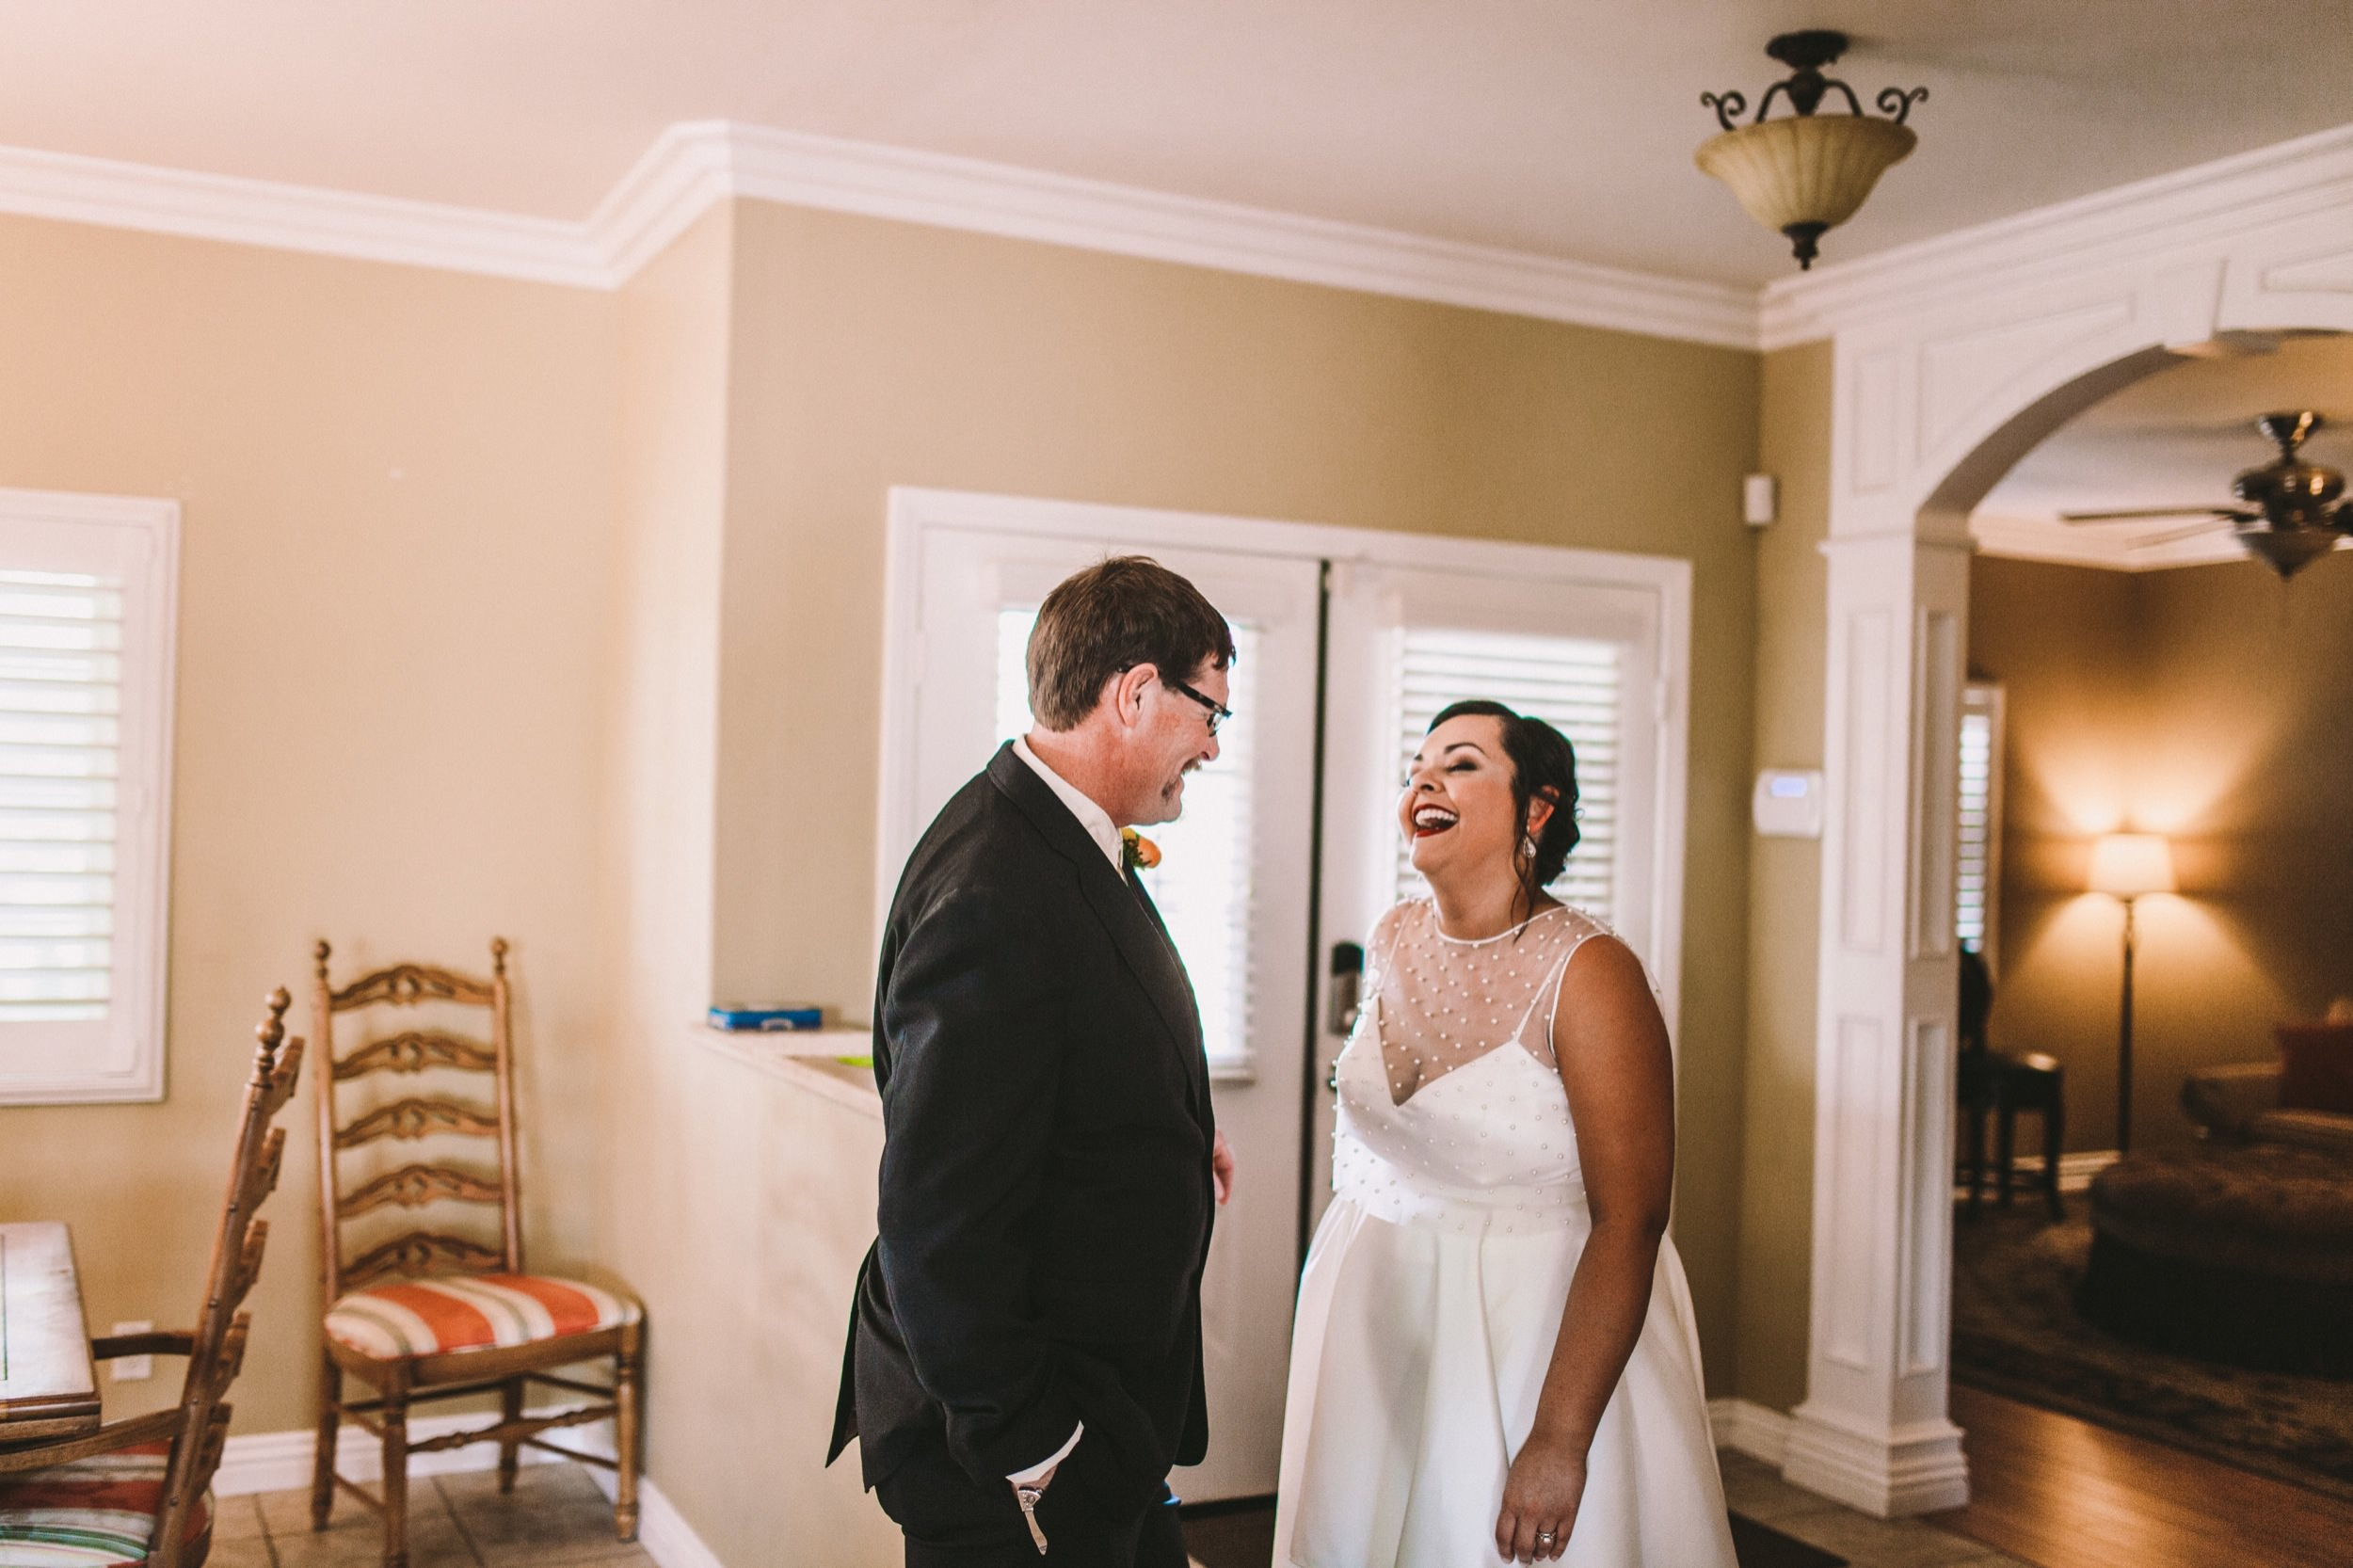 Father of the Bride First Look - Temecula Documentary Wedding Photography